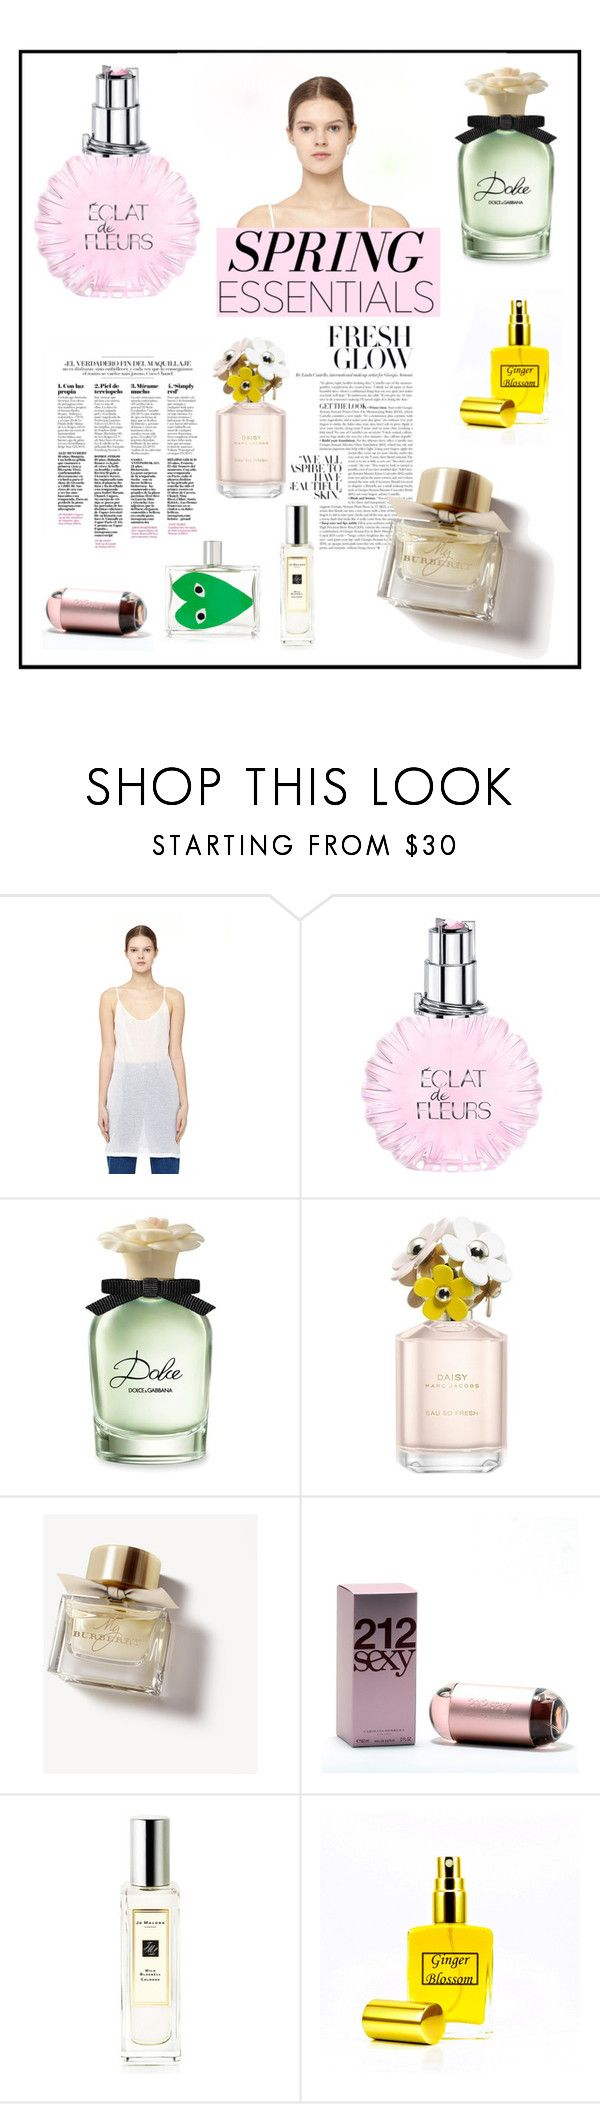 """""""In Bloom: Spring Perfume"""" by belldraw ❤ liked on Polyvore featuring beauty, Ann Demeulemeester, Lanvin, Dolce&Gabbana, Marc Jacobs, Burberry, Carolina Herrera, Jo Malone, Comme des Garçons and springperfume"""